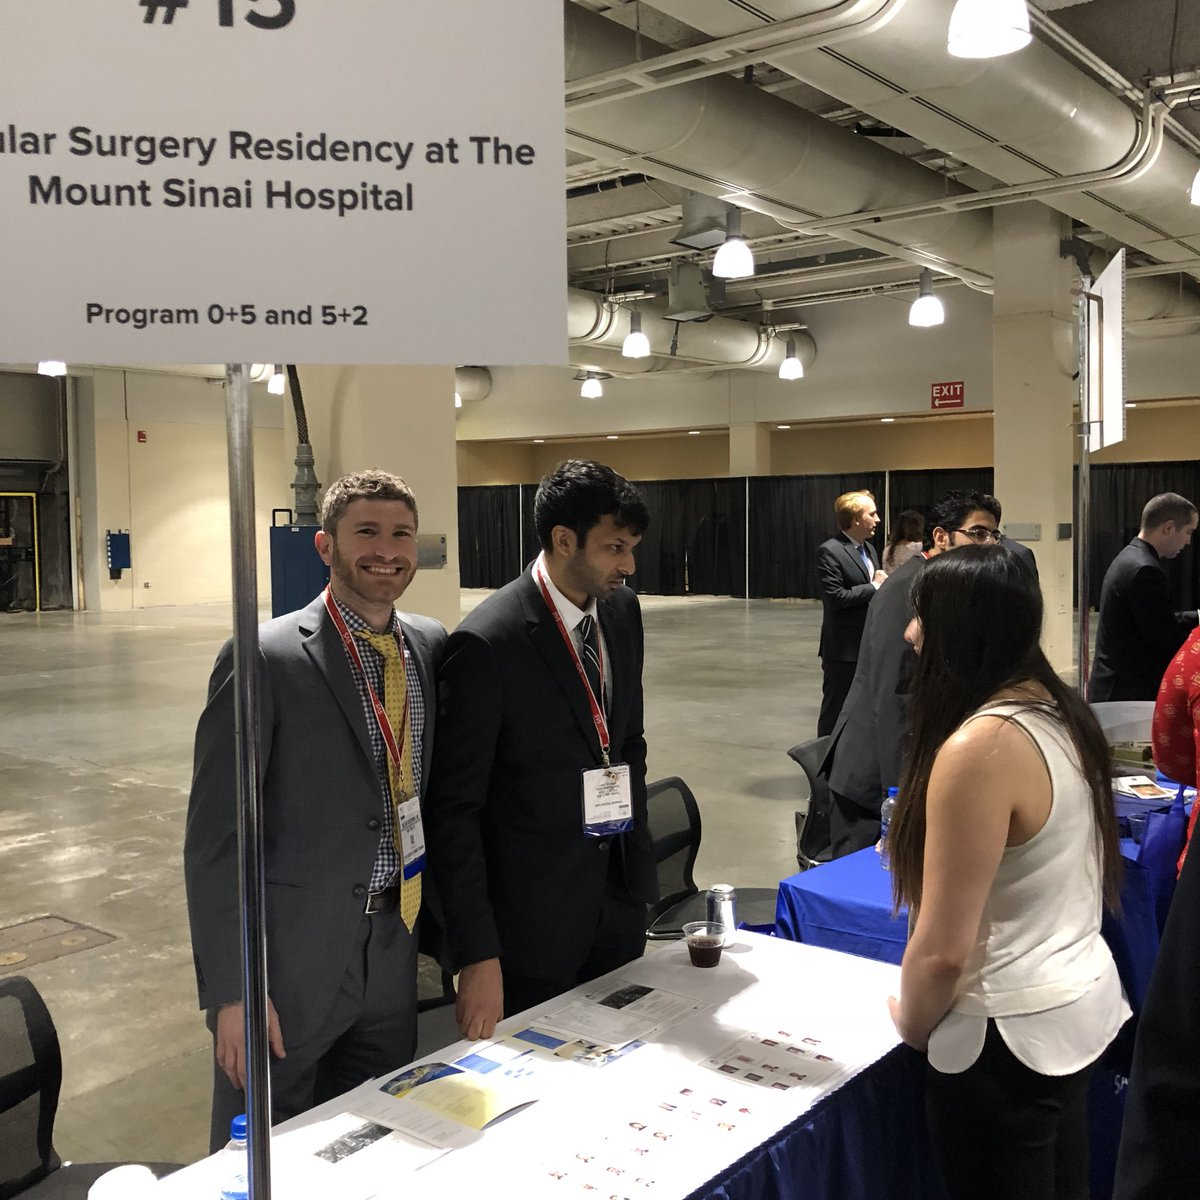 Mount Sinai Vascular on Twitter: